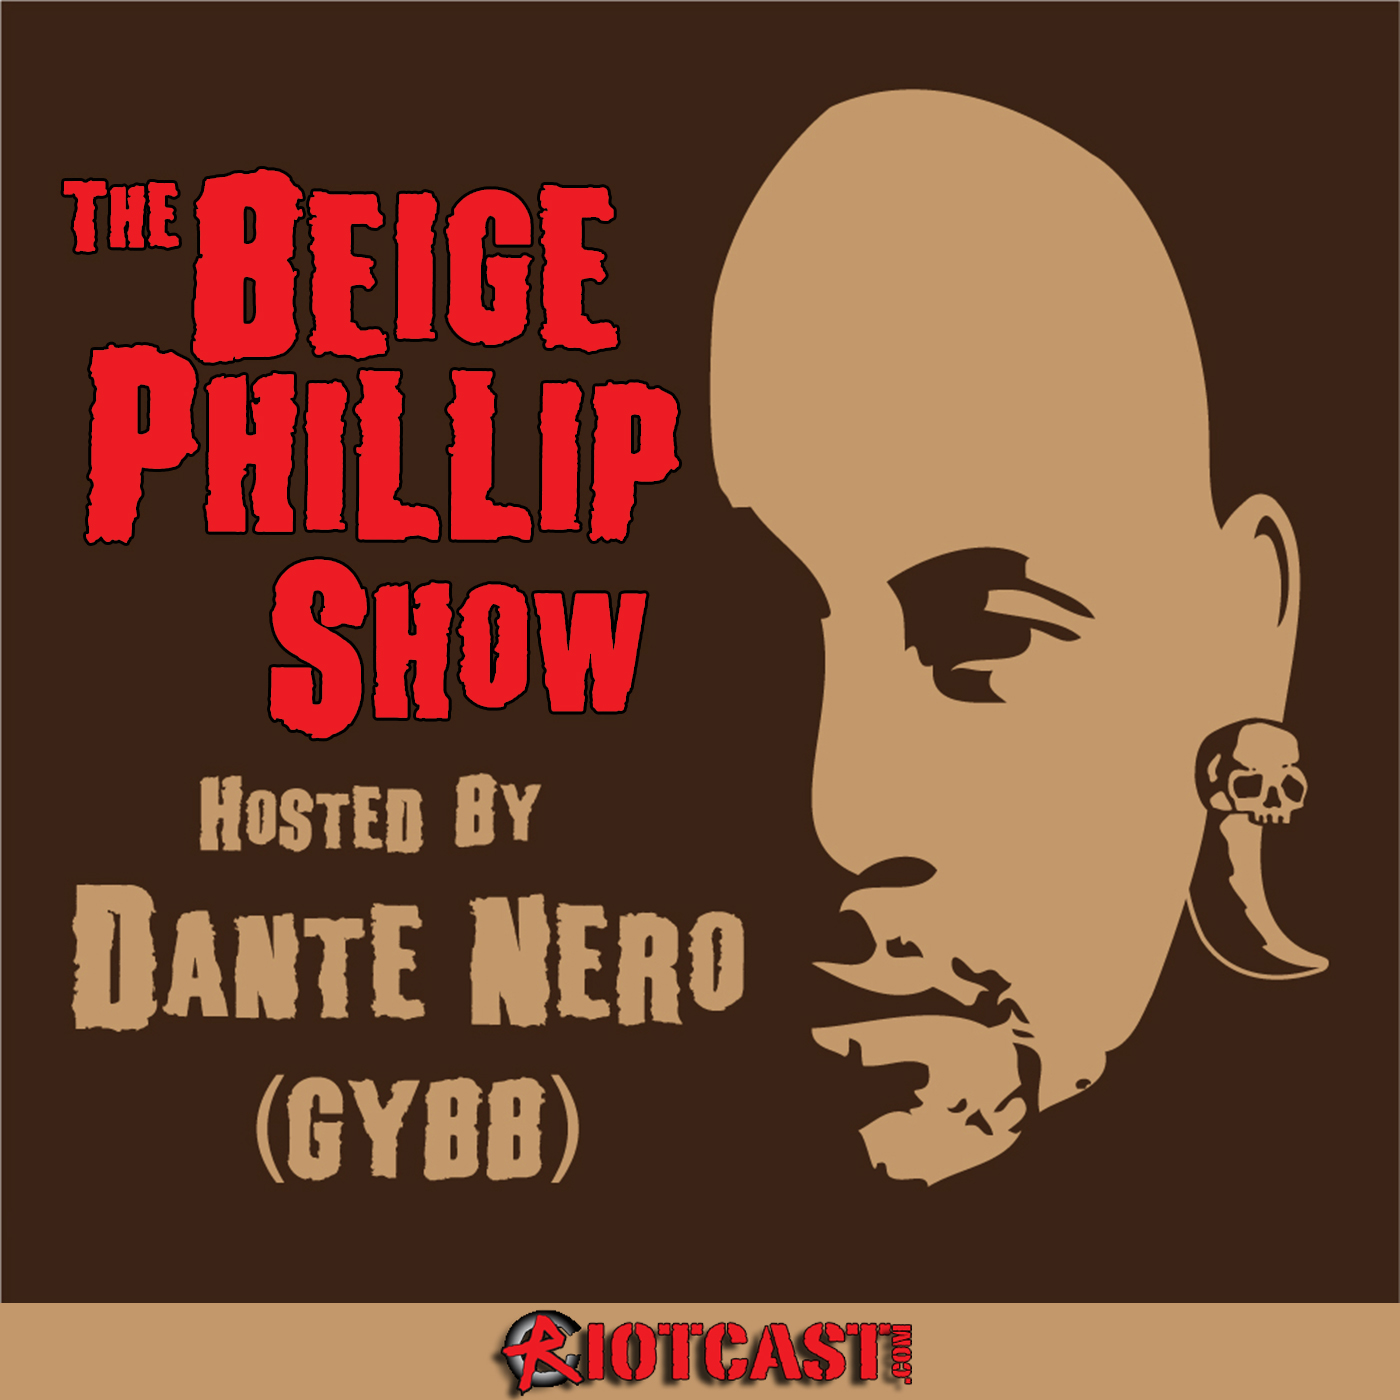 The Beige Phillip Show show art